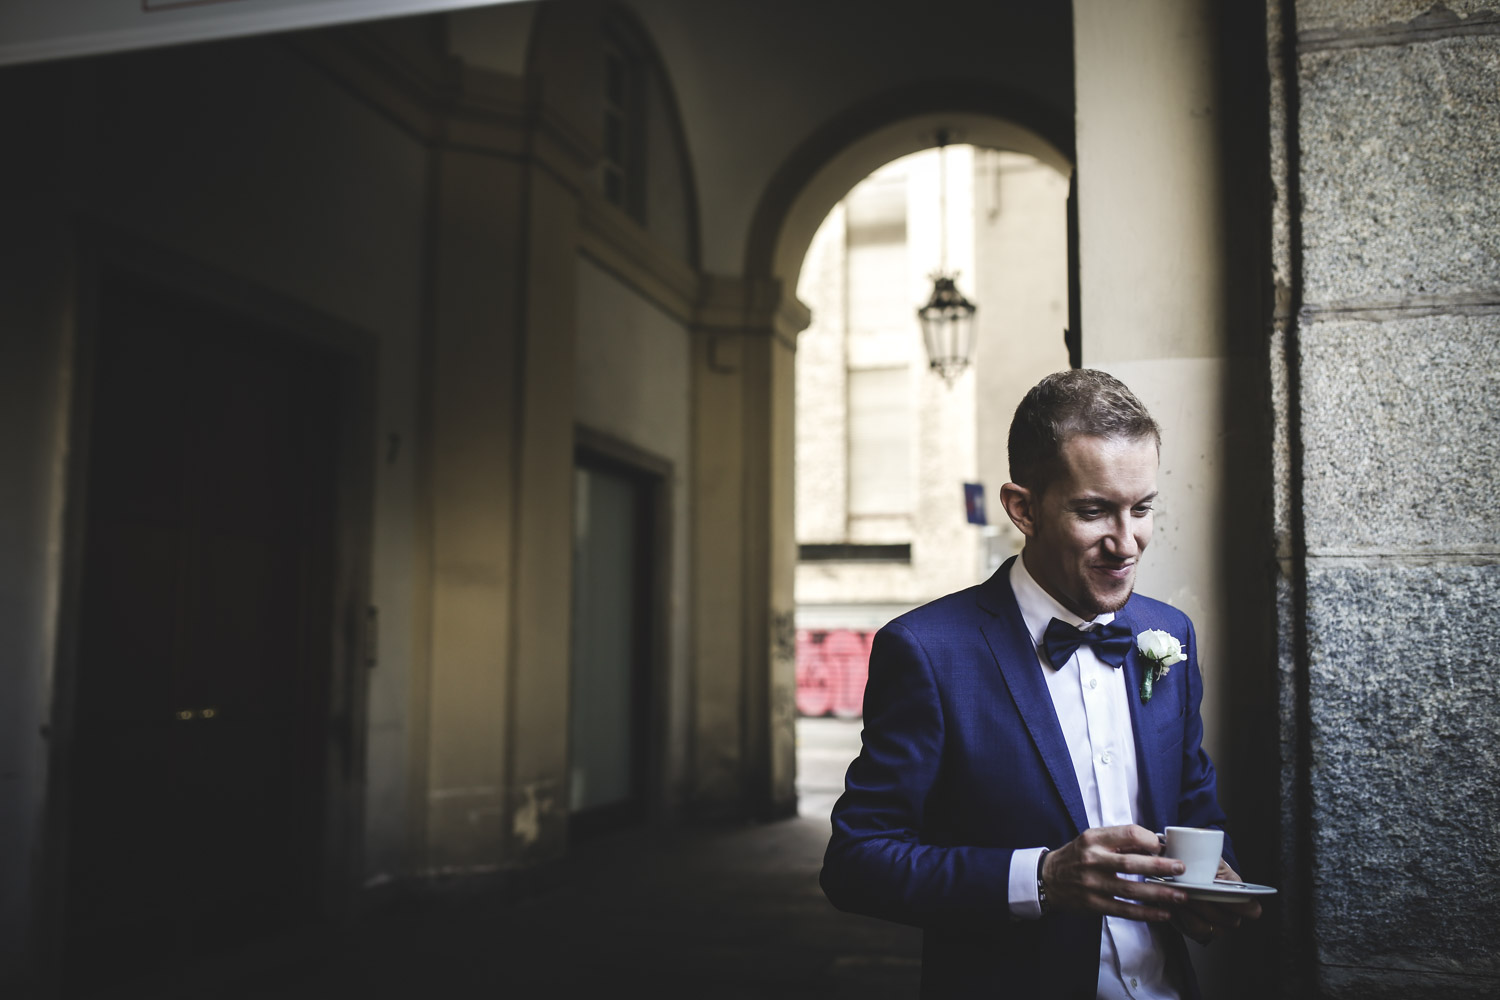 monica-sica_photography_trattoria-revelli_wedding-gay_torino_day_44